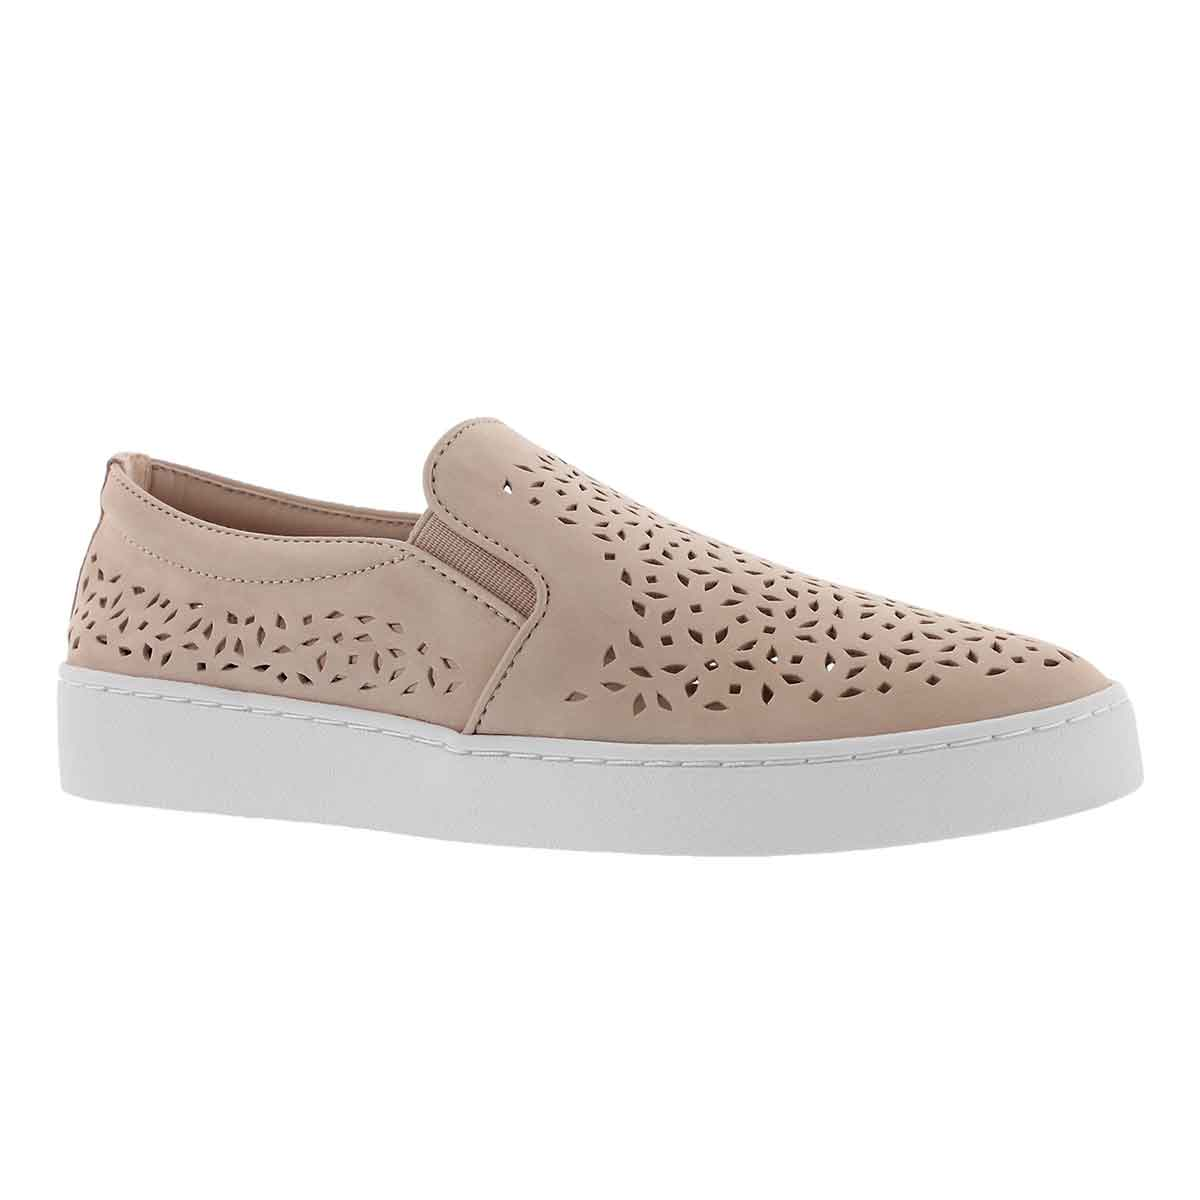 Women's MIDI PERF pink casual slip on shoes